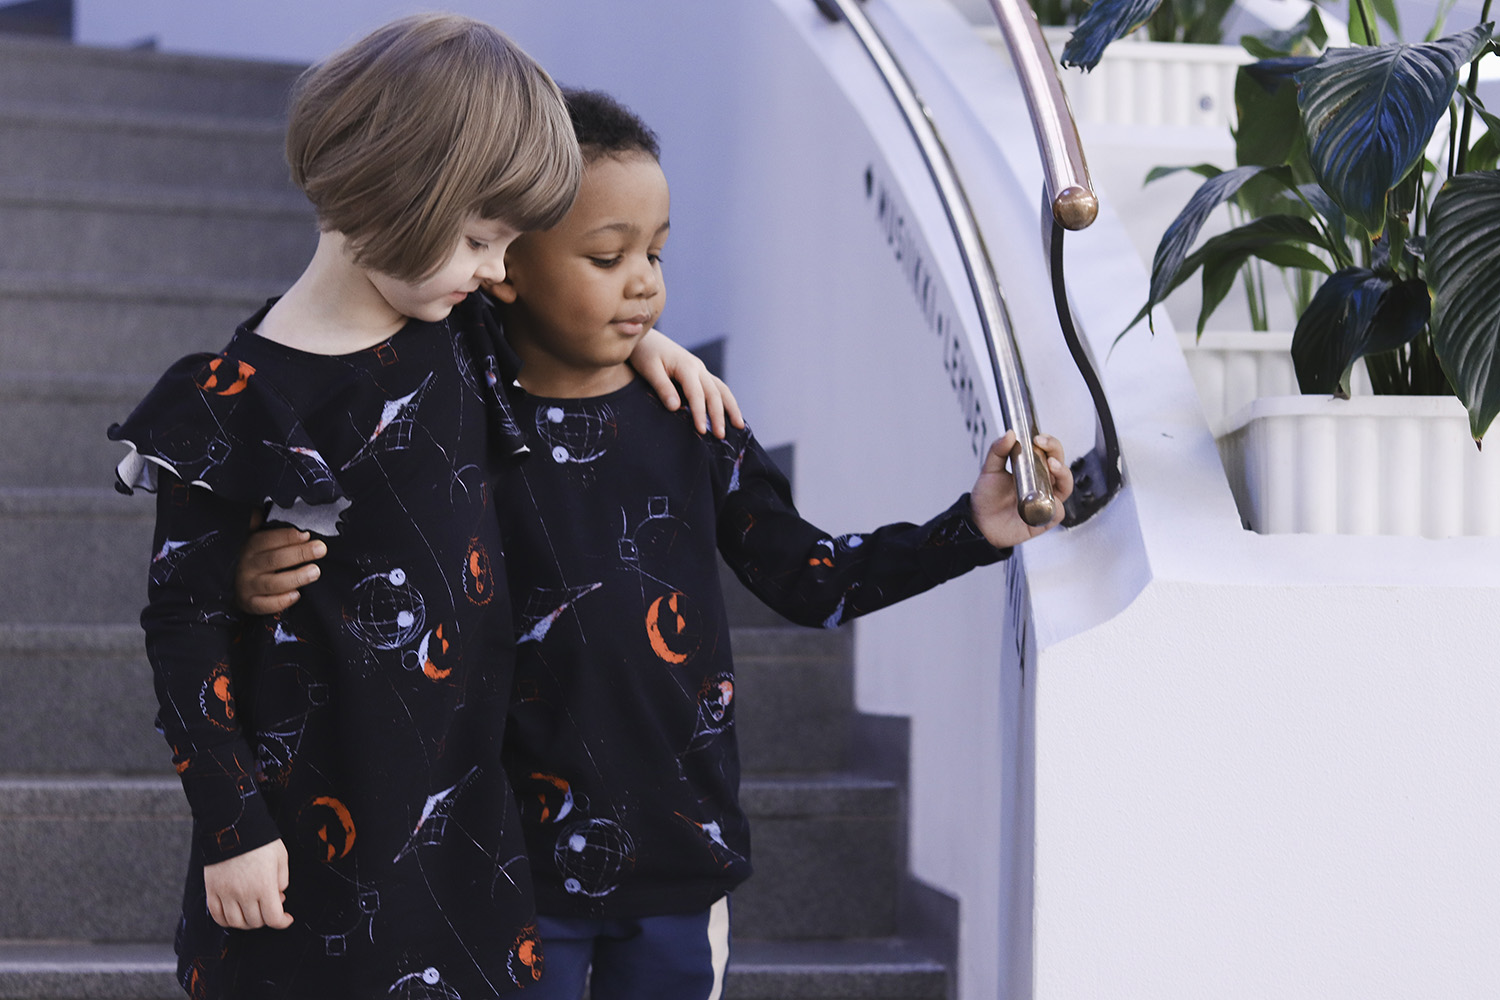 aarrekid_little_stranger_exploring_in_space_black_lorelai_dress_mekko_longsleeve_shirt_paita) (9)_small